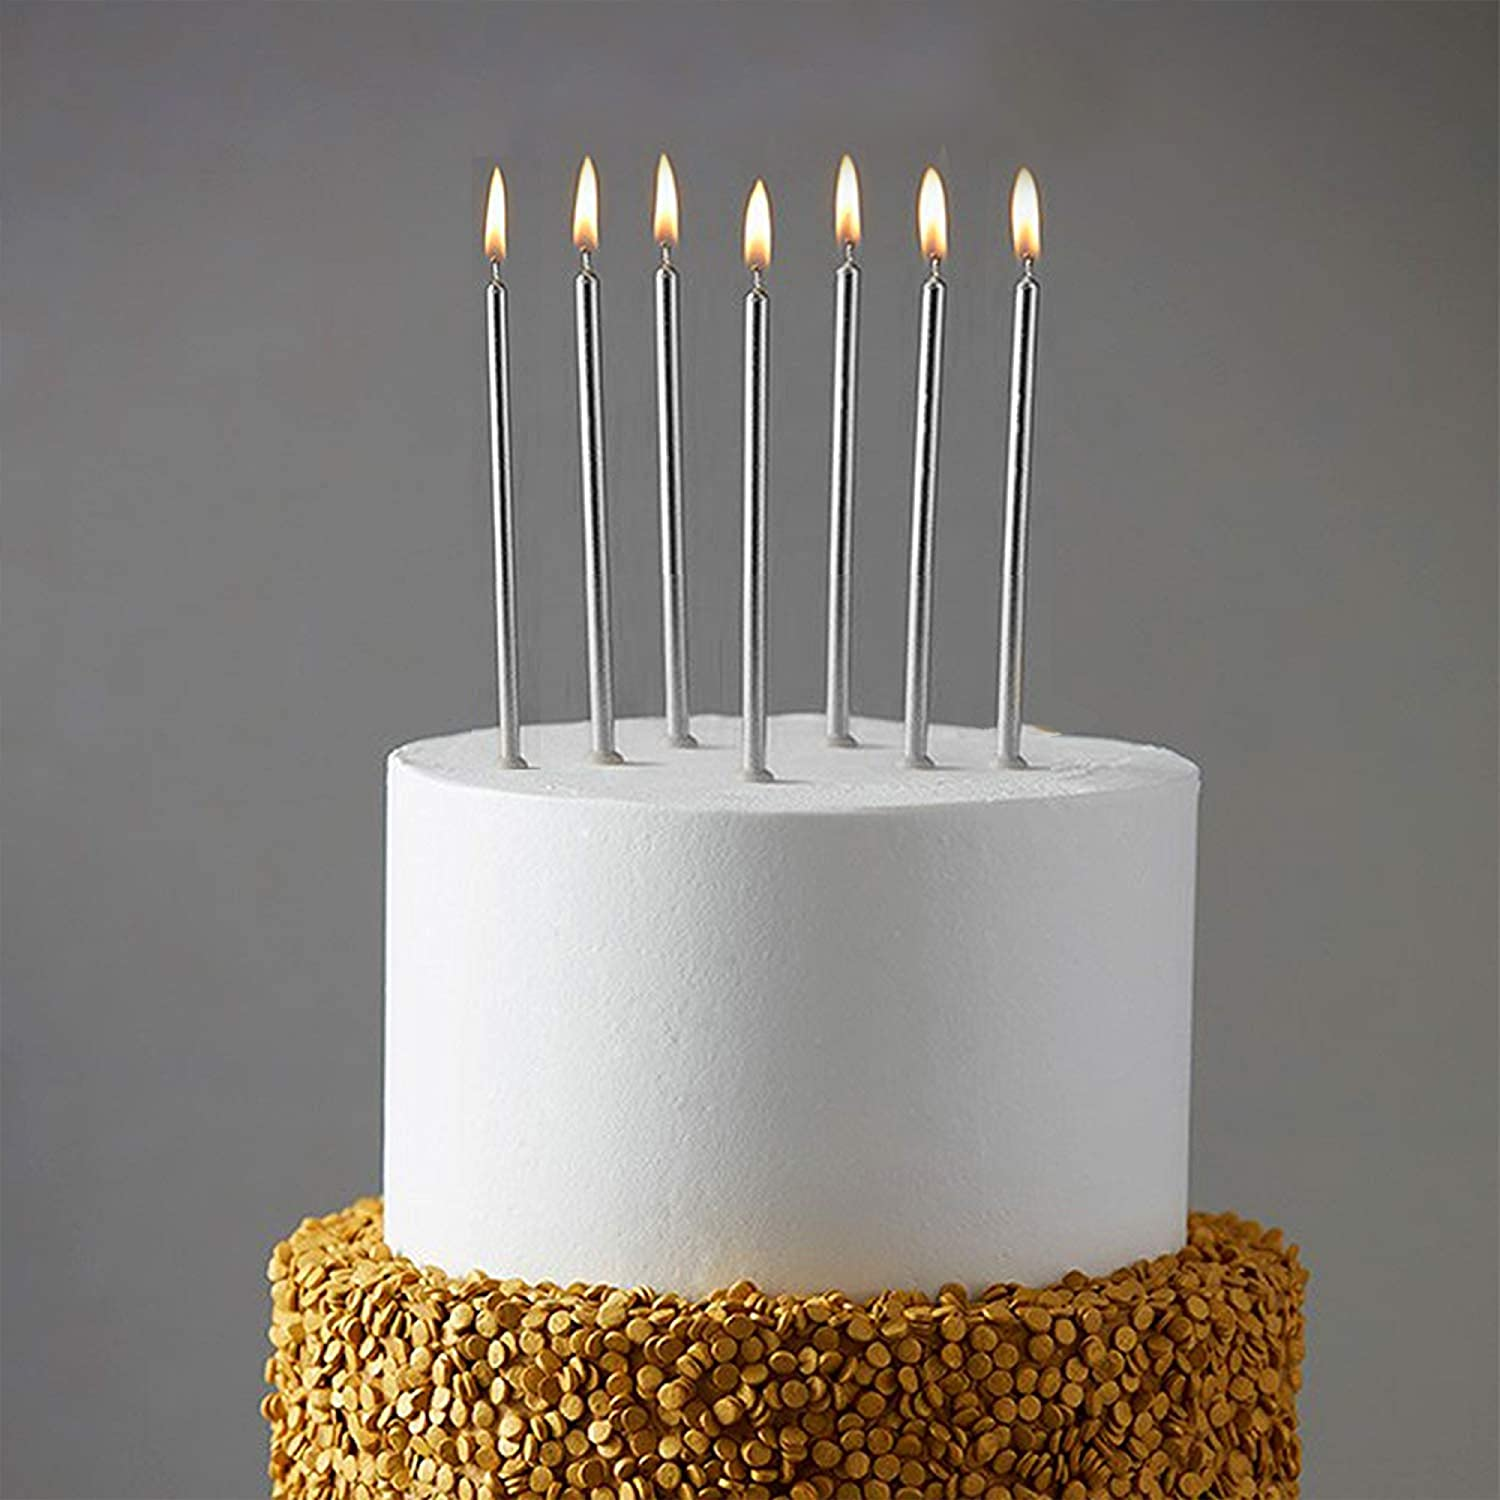 24 Pieces Birthday Candles Long Thin Metallic Cake In Holders For Wedding Party Decorations Amazon Grocery Gourmet